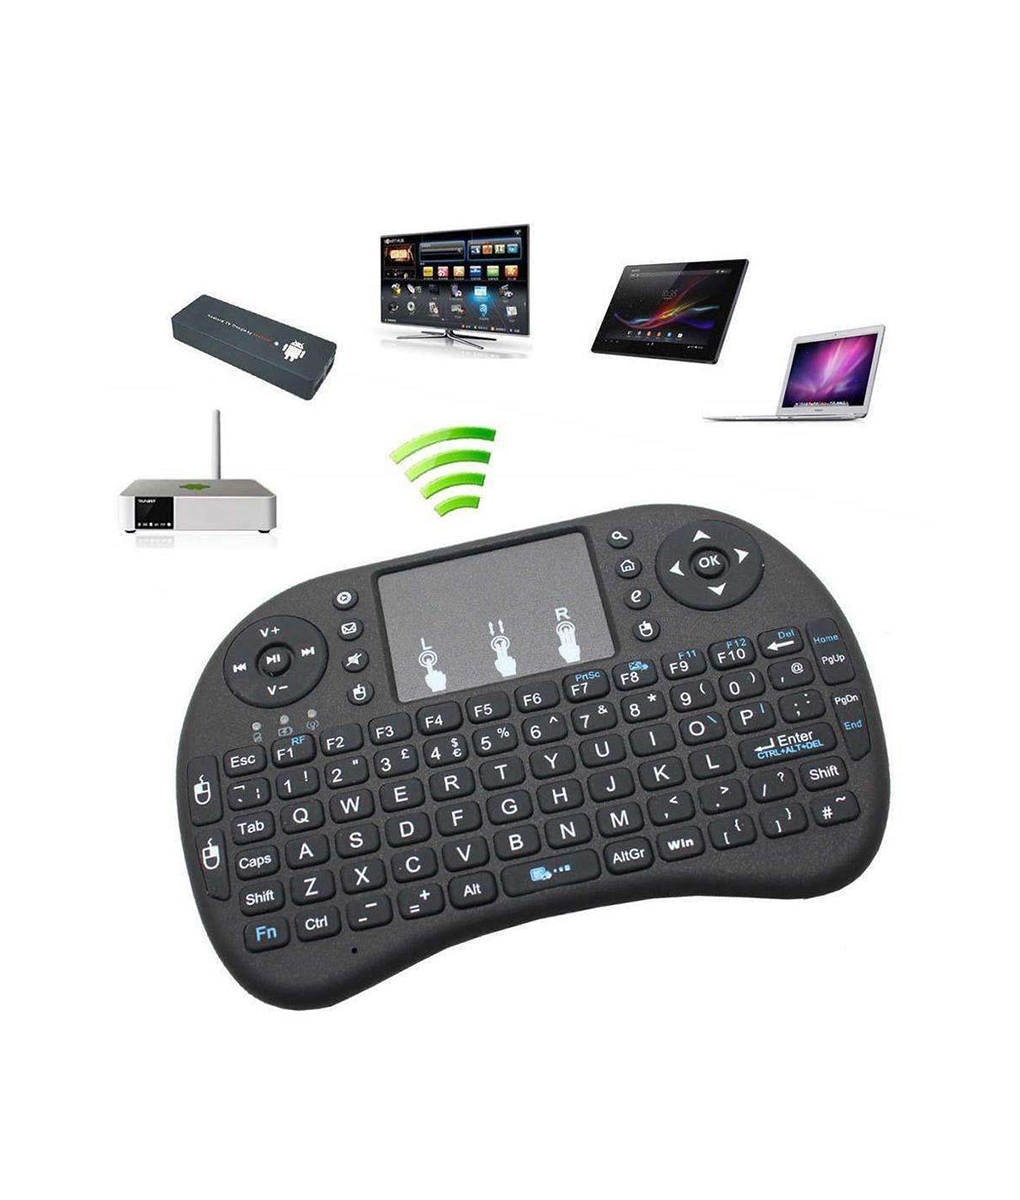 Bluetooth Keyboard For Android Box: Best Remote For Android TV Box And More